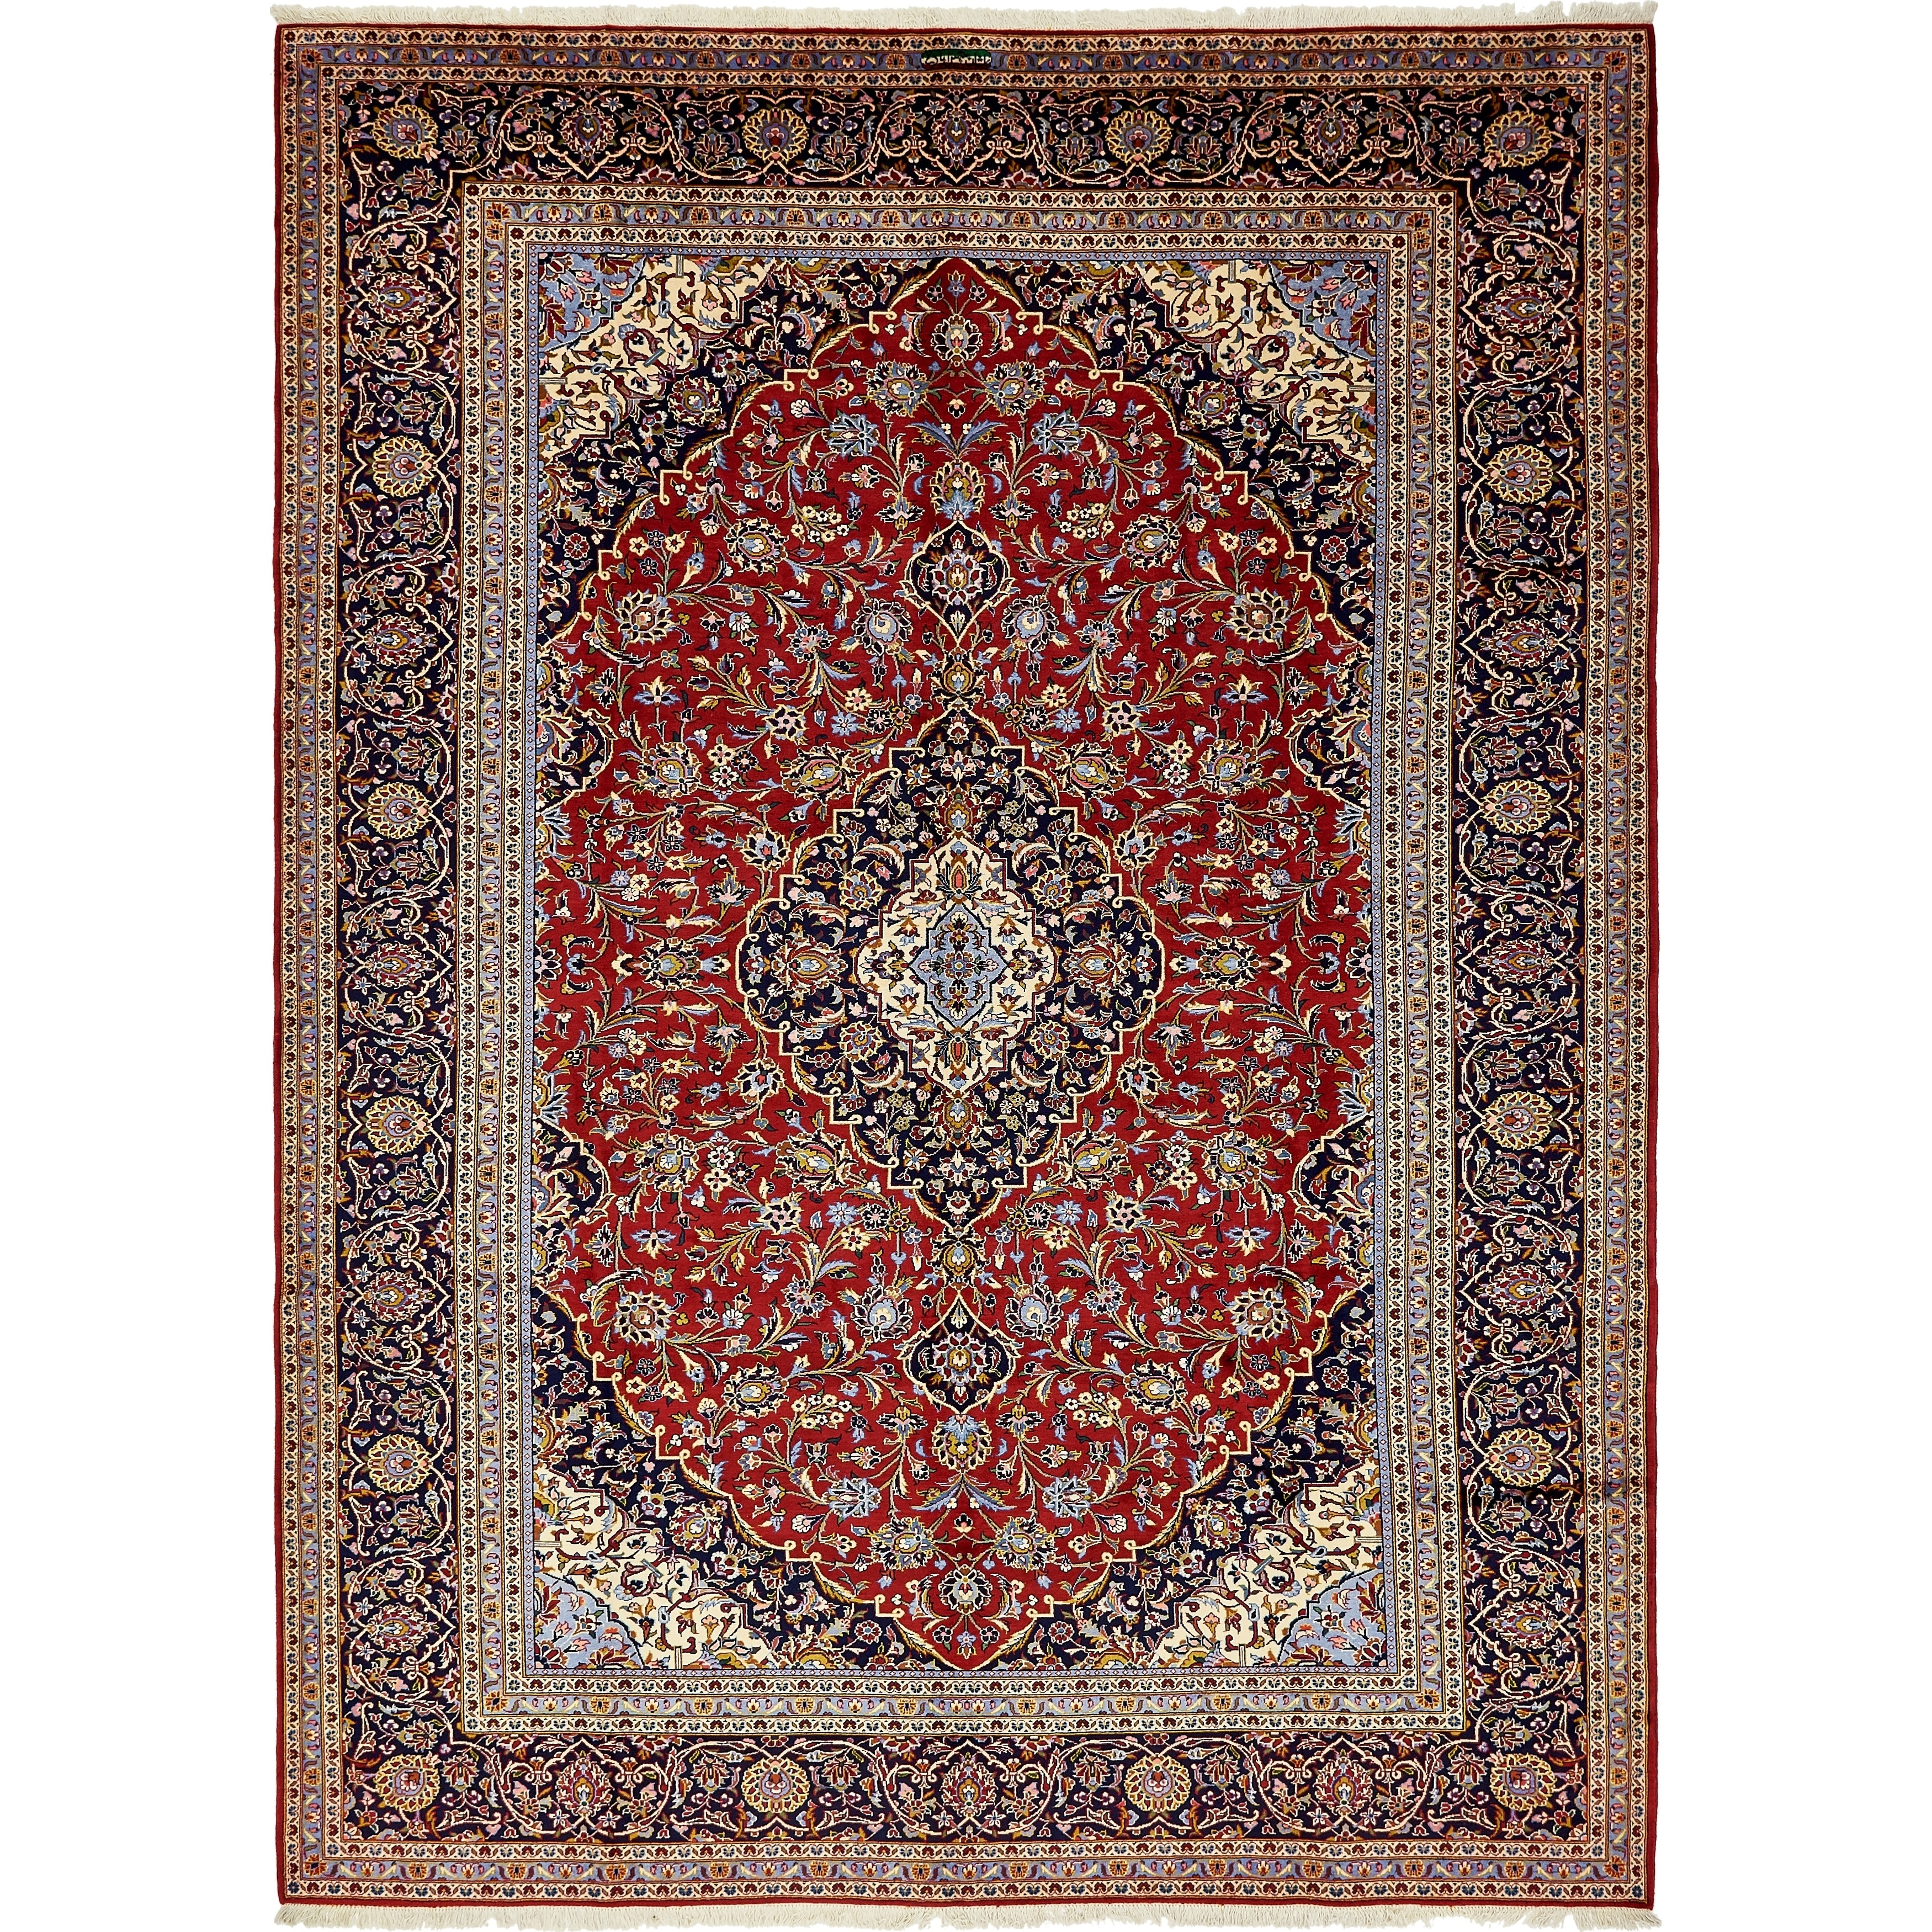 Hand Knotted Kashan Semi Antique Wool Area Rug - 10 x 13 10 (Red - 10 x 13 10)